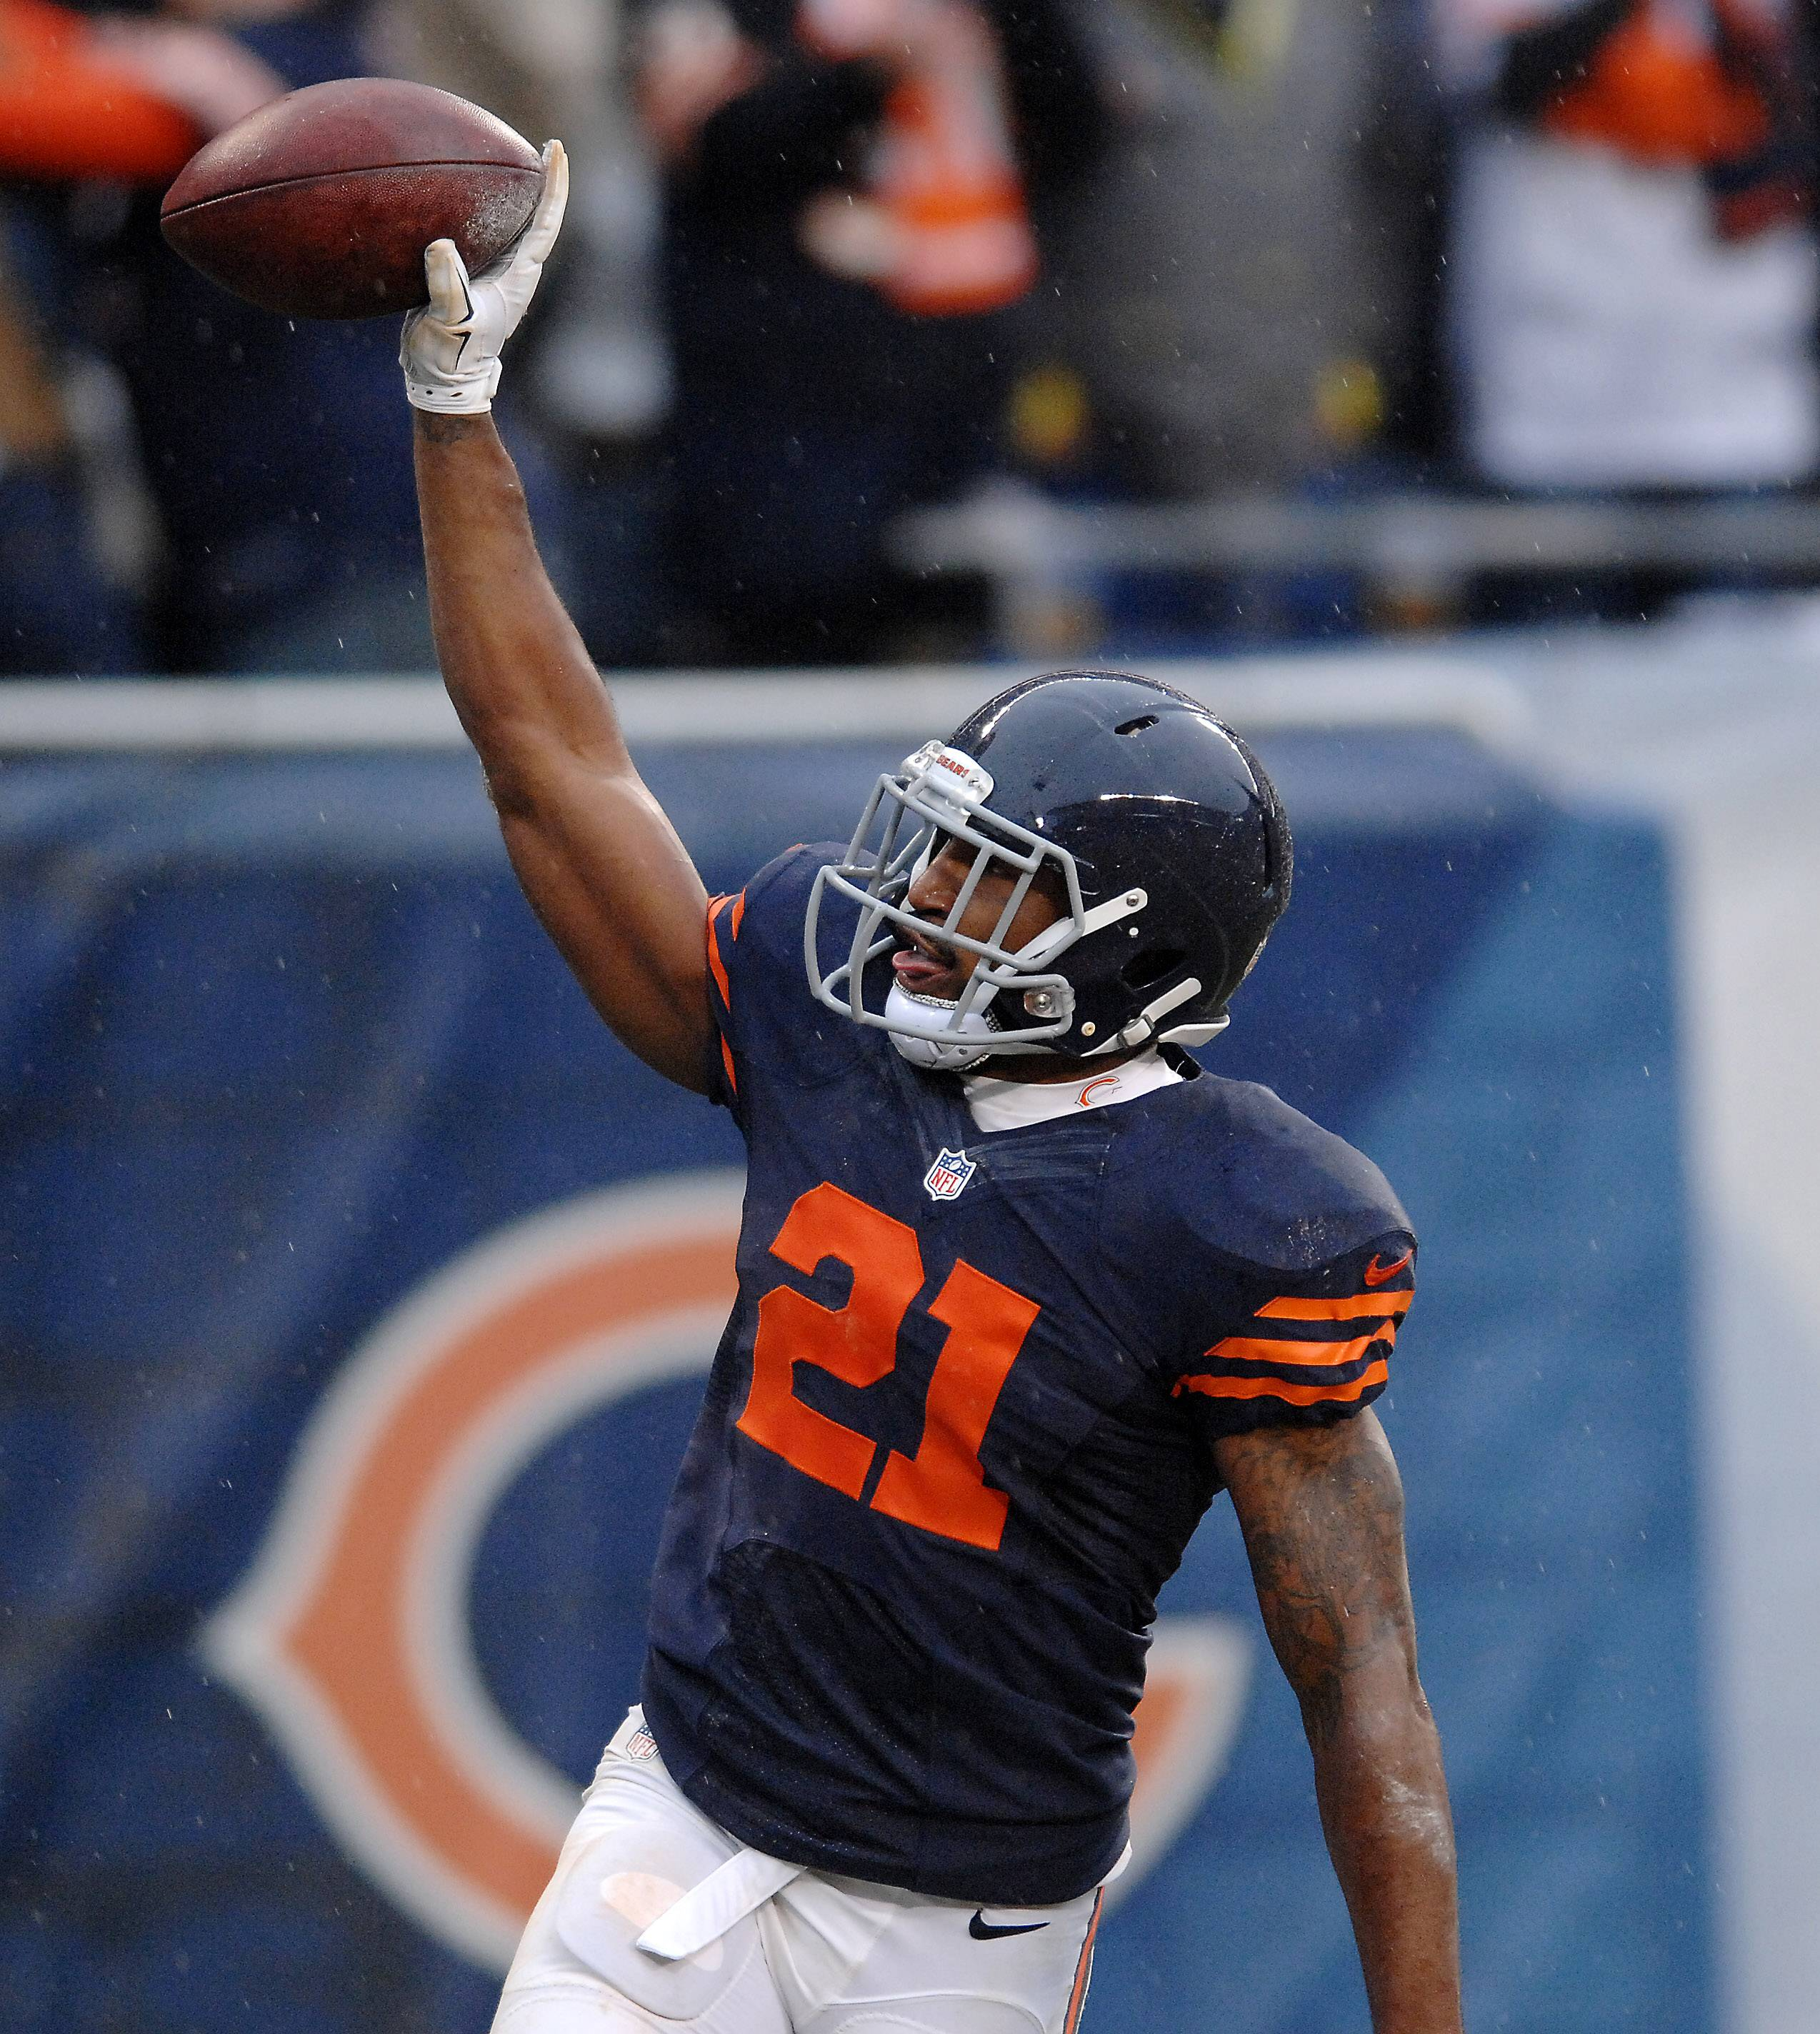 Bears strong safety Ryan Mundy (21) celebrates his interception during Sunday's game at Soldier Field.